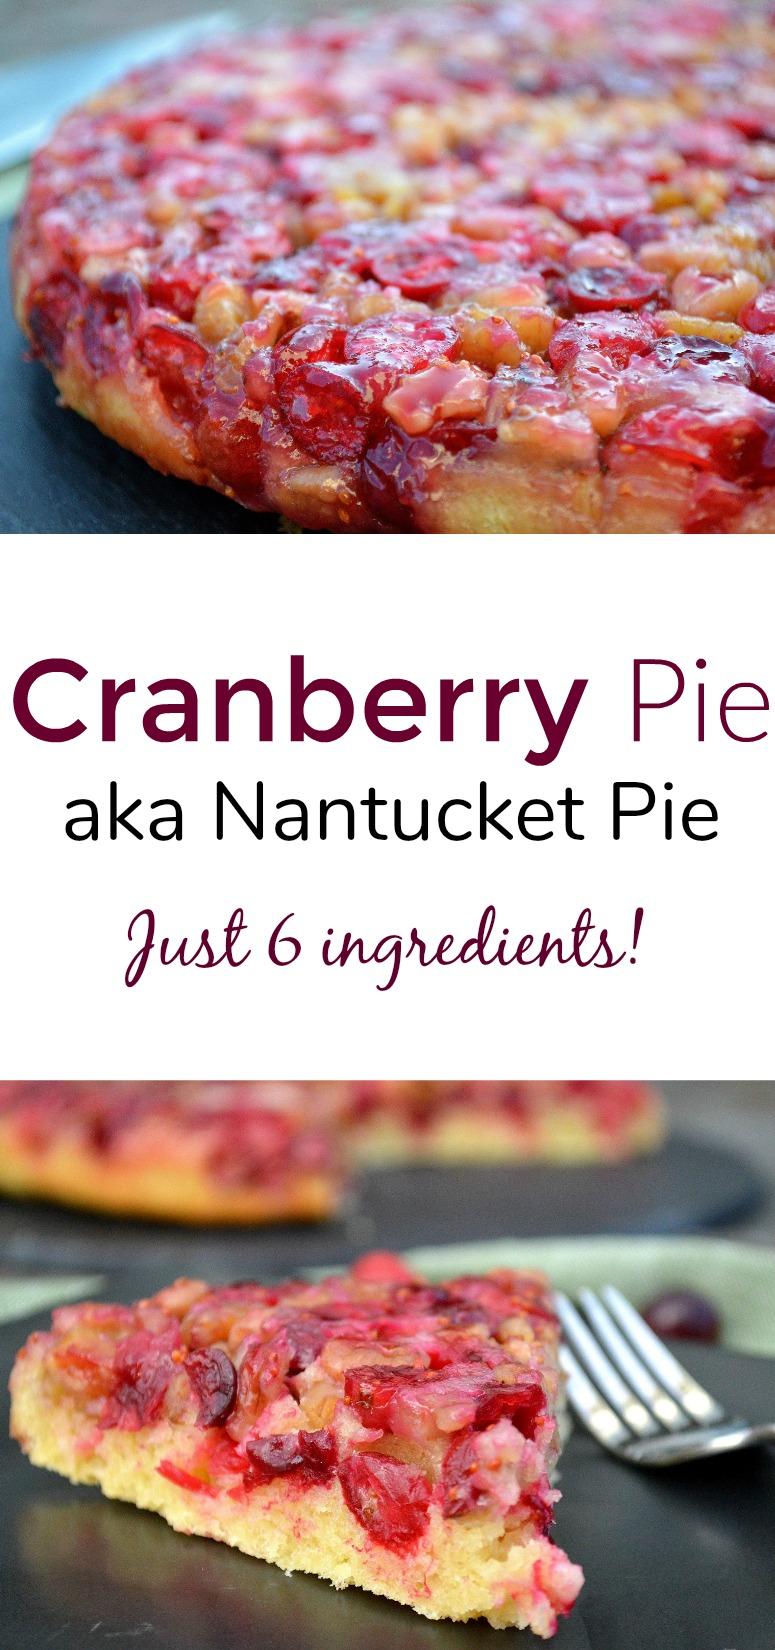 Cranberry Pie aka Nantucket Pie is a memorable (and easy) Christmas or Thanksgiving dessert! Just 6 ingredients!